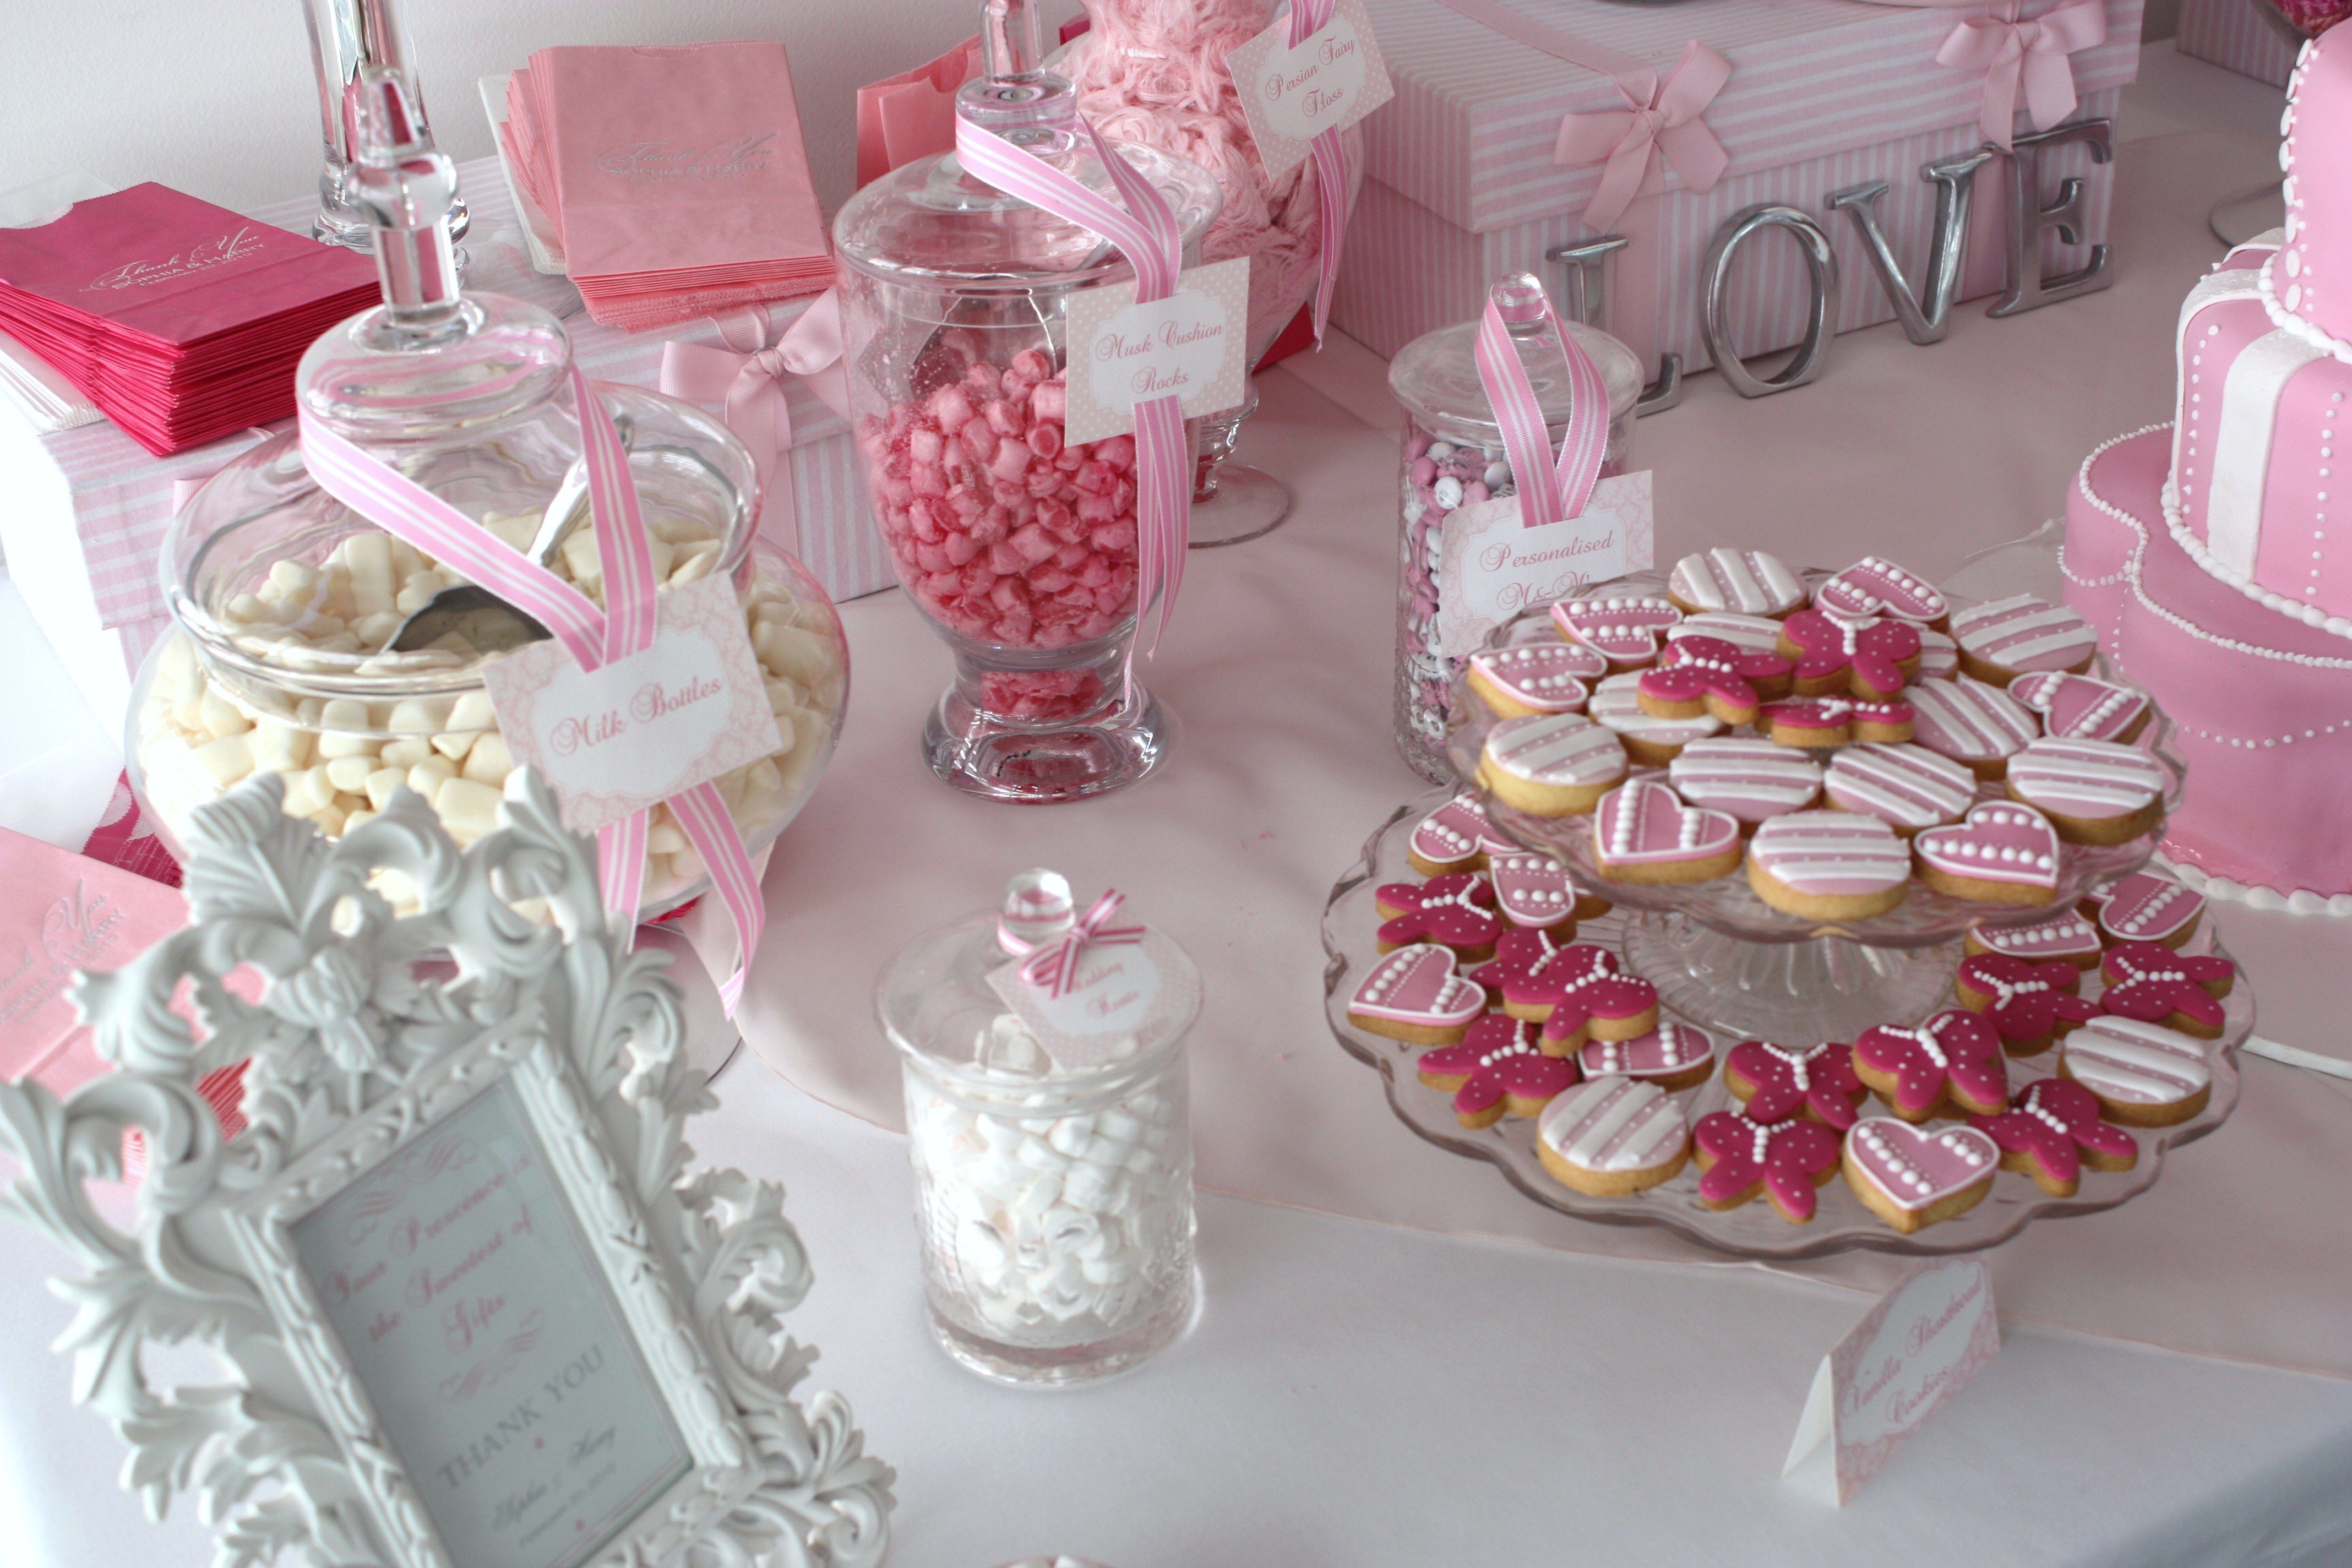 Candy Buffet Ideas   Sugarcoated Pink And White Candy Buffet   The Sweetest  Occasion .